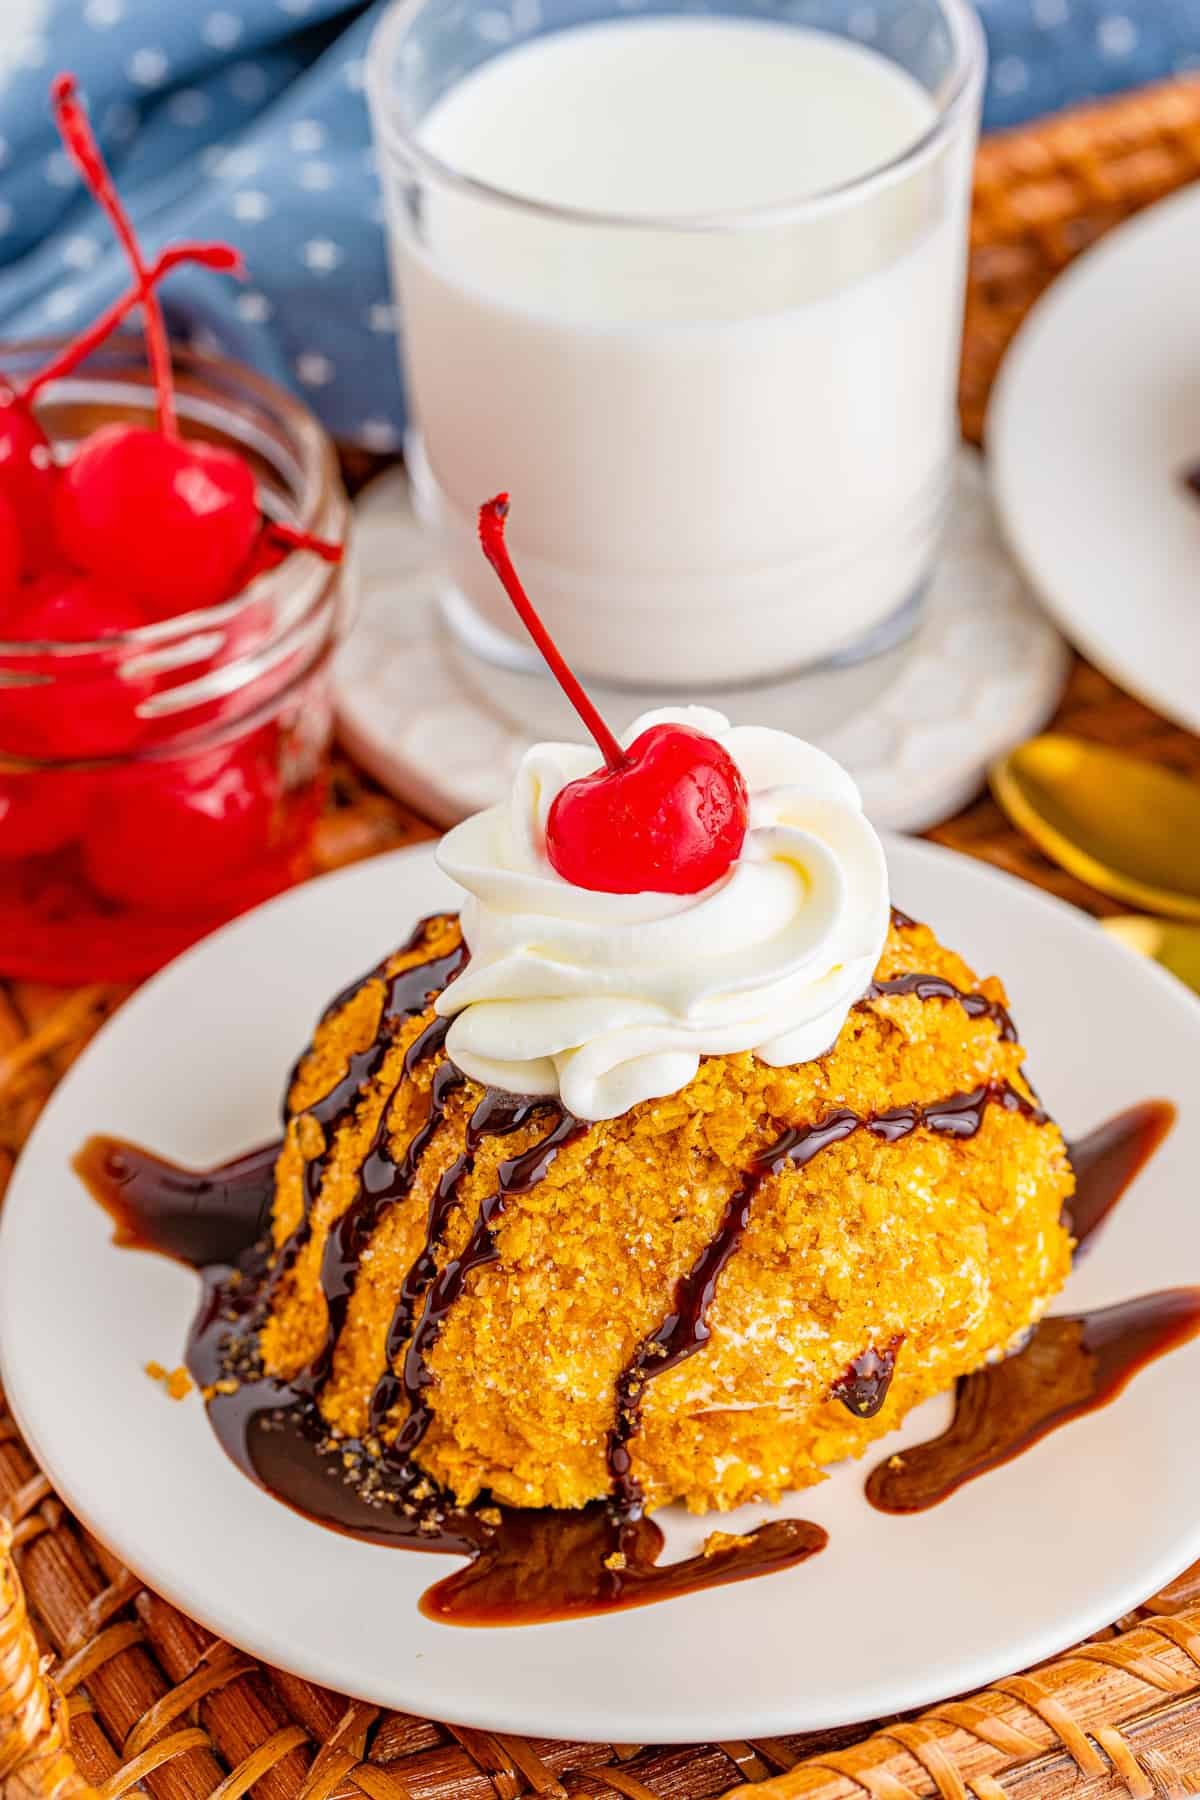 Overhead angle of finished Fried Ice Cream with toppings